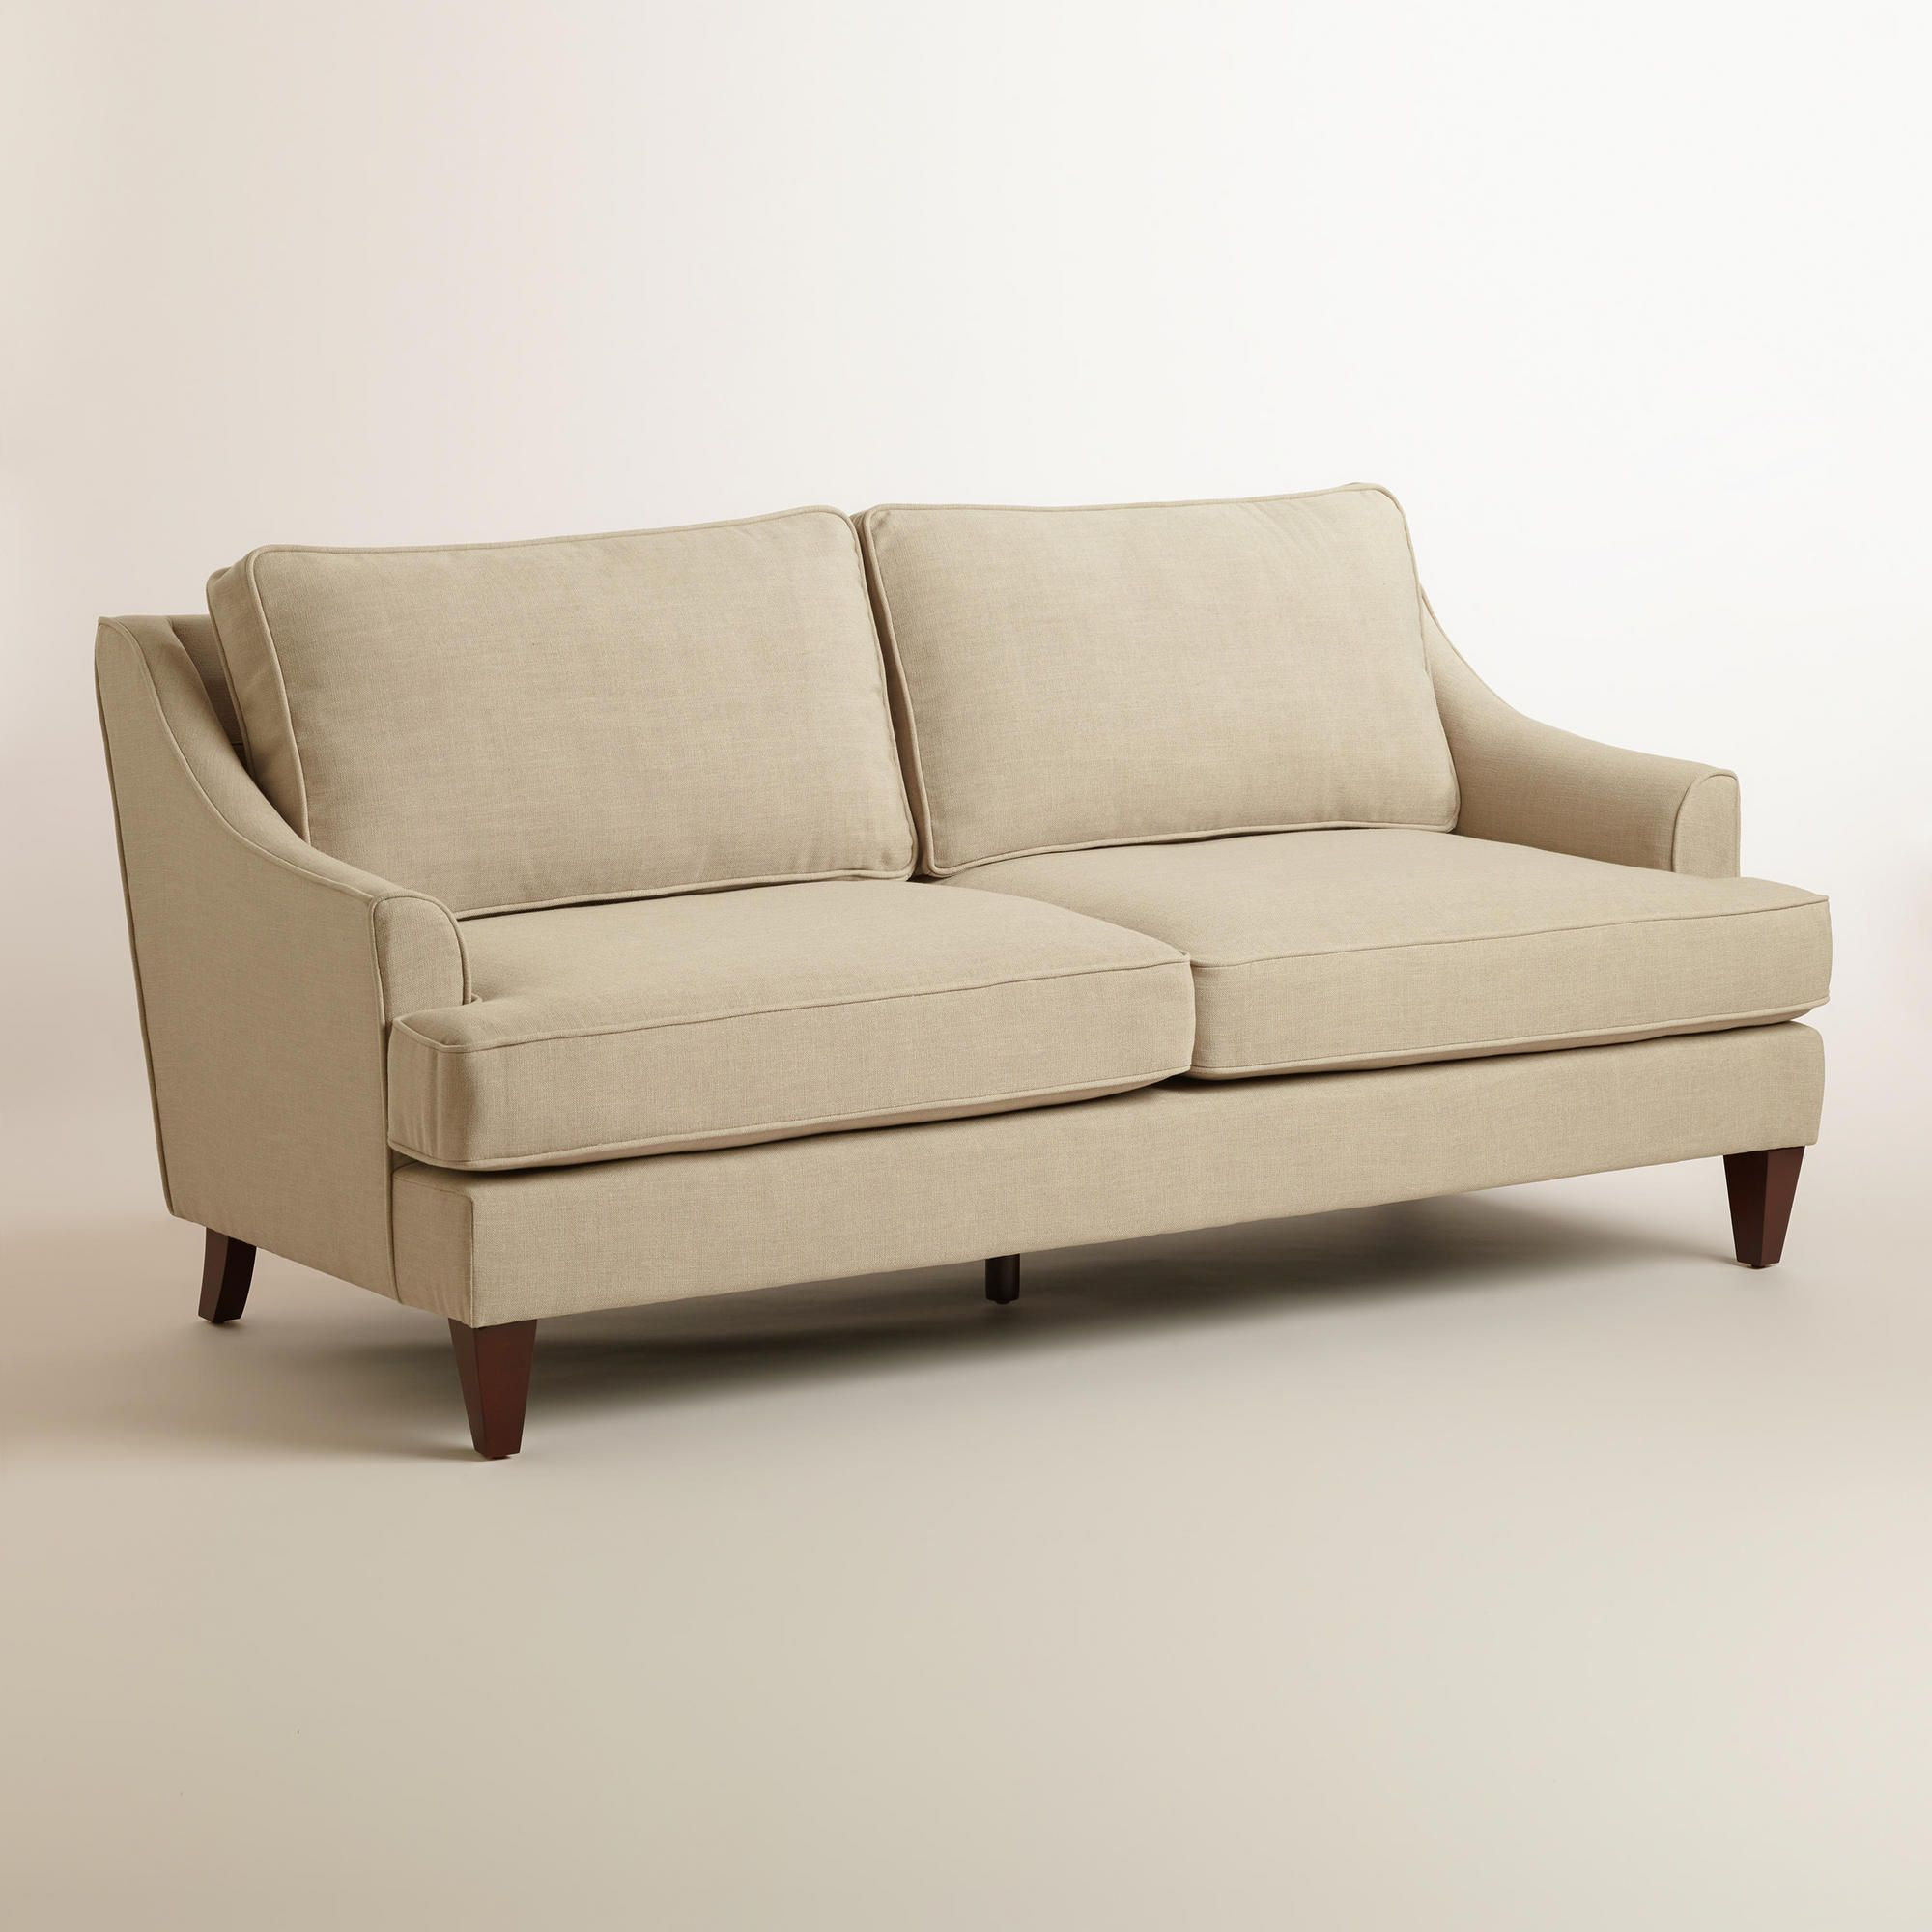 Straw Ellis Sofa World Market 74999 Two of these facing a